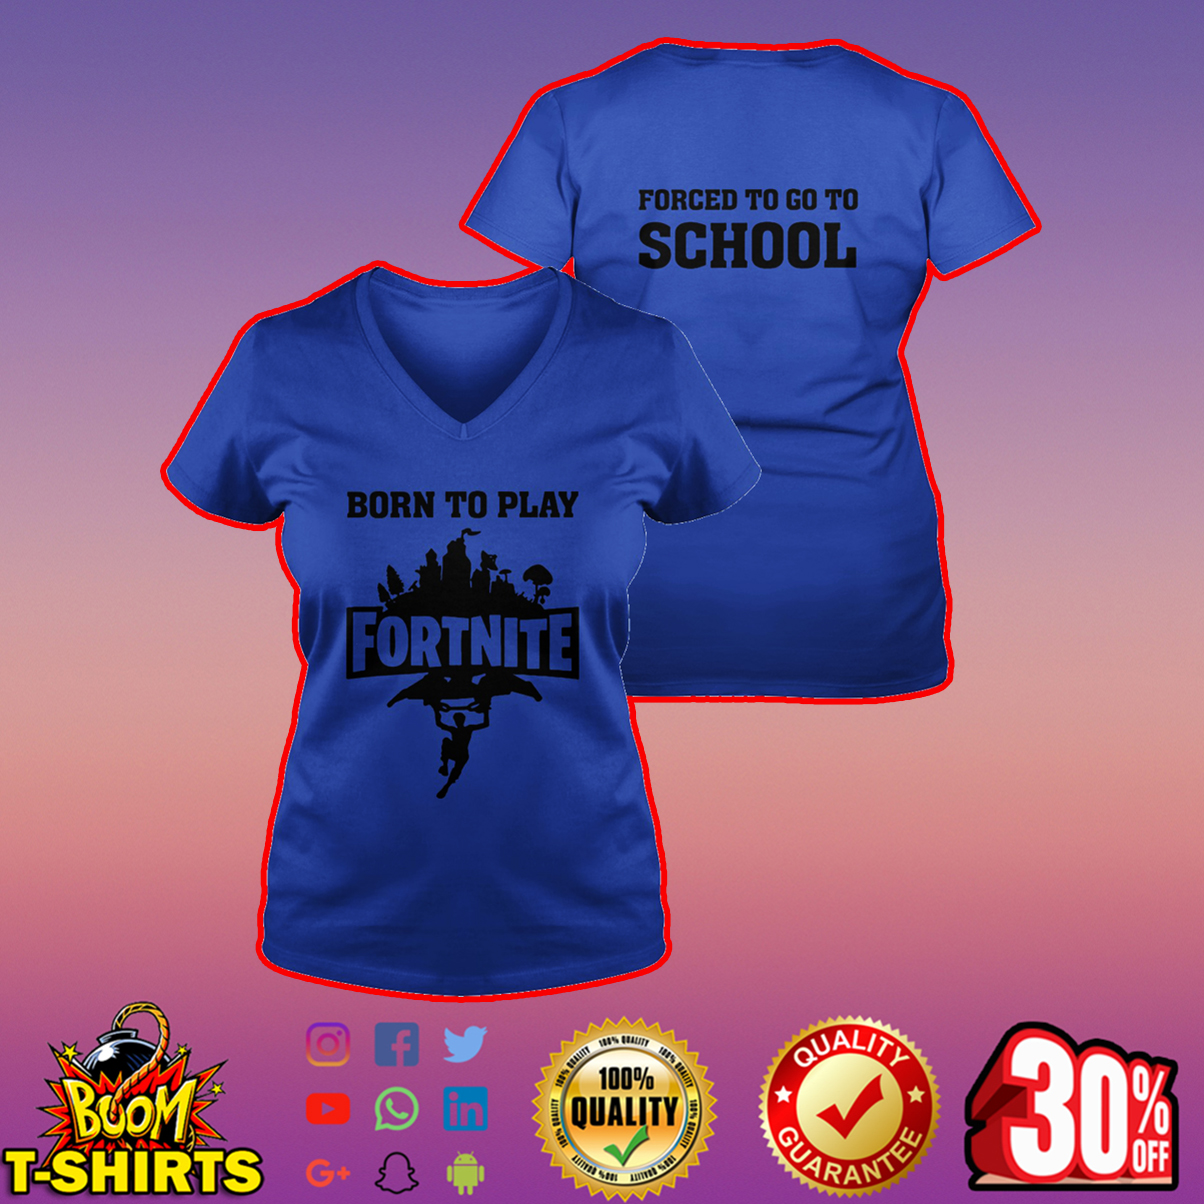 Born to play Fortnite forced to go to school v-neck